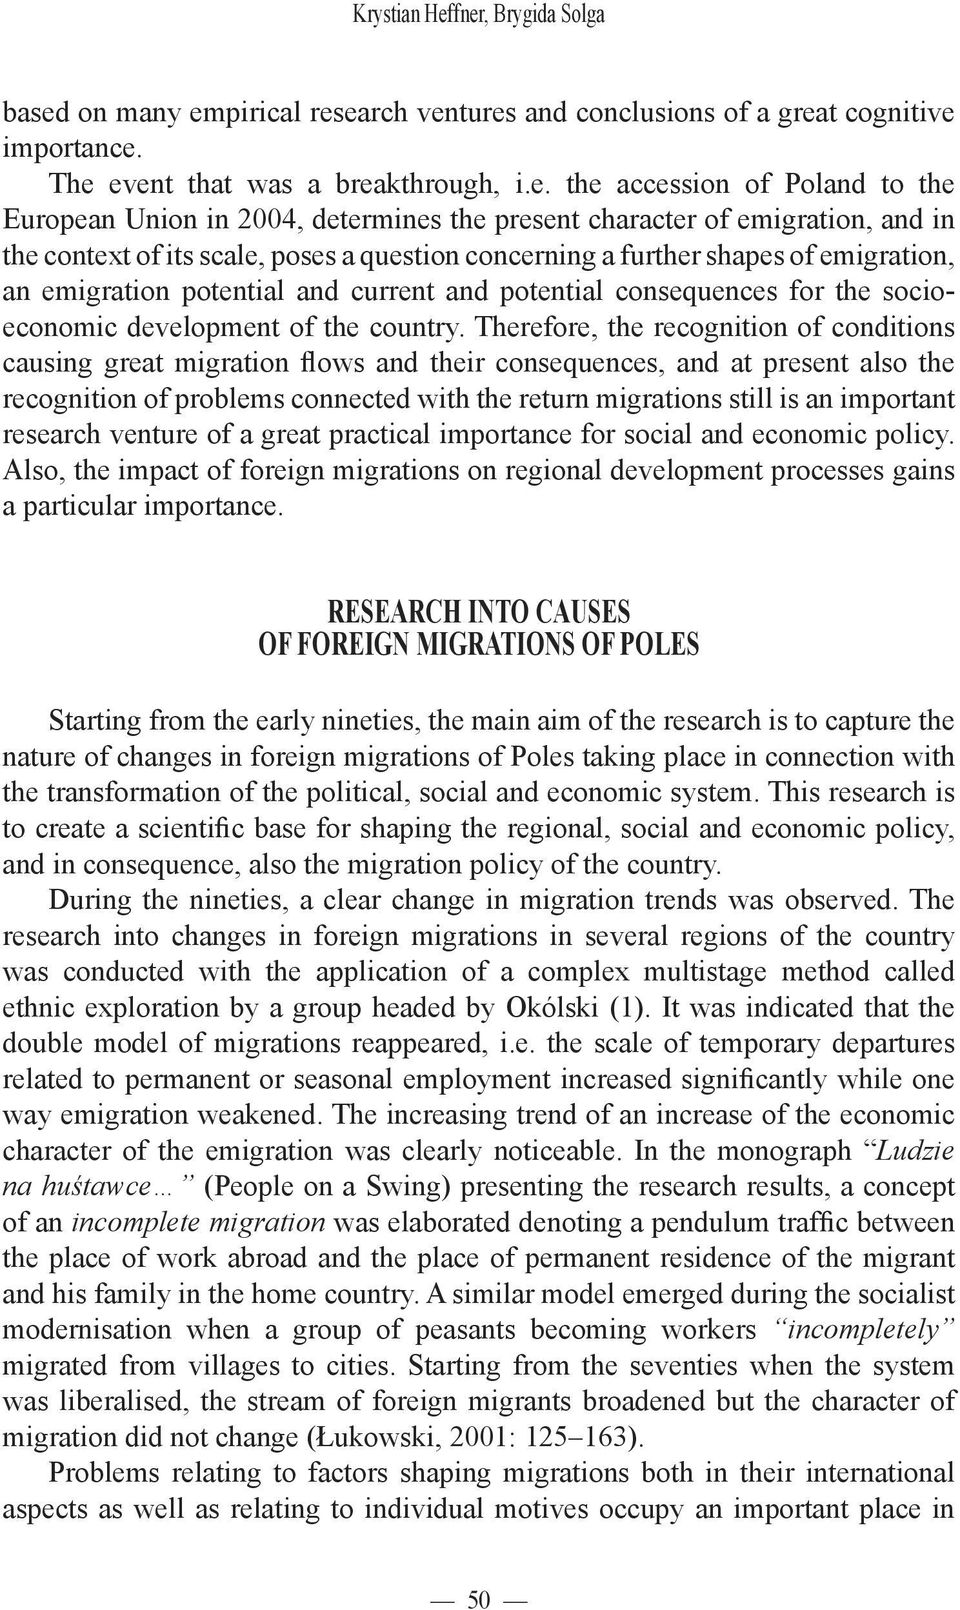 2004, determines the present character of emigration, and in the context of its scale, poses a question concerning a further shapes of emigration, an emigration potential and current and potential